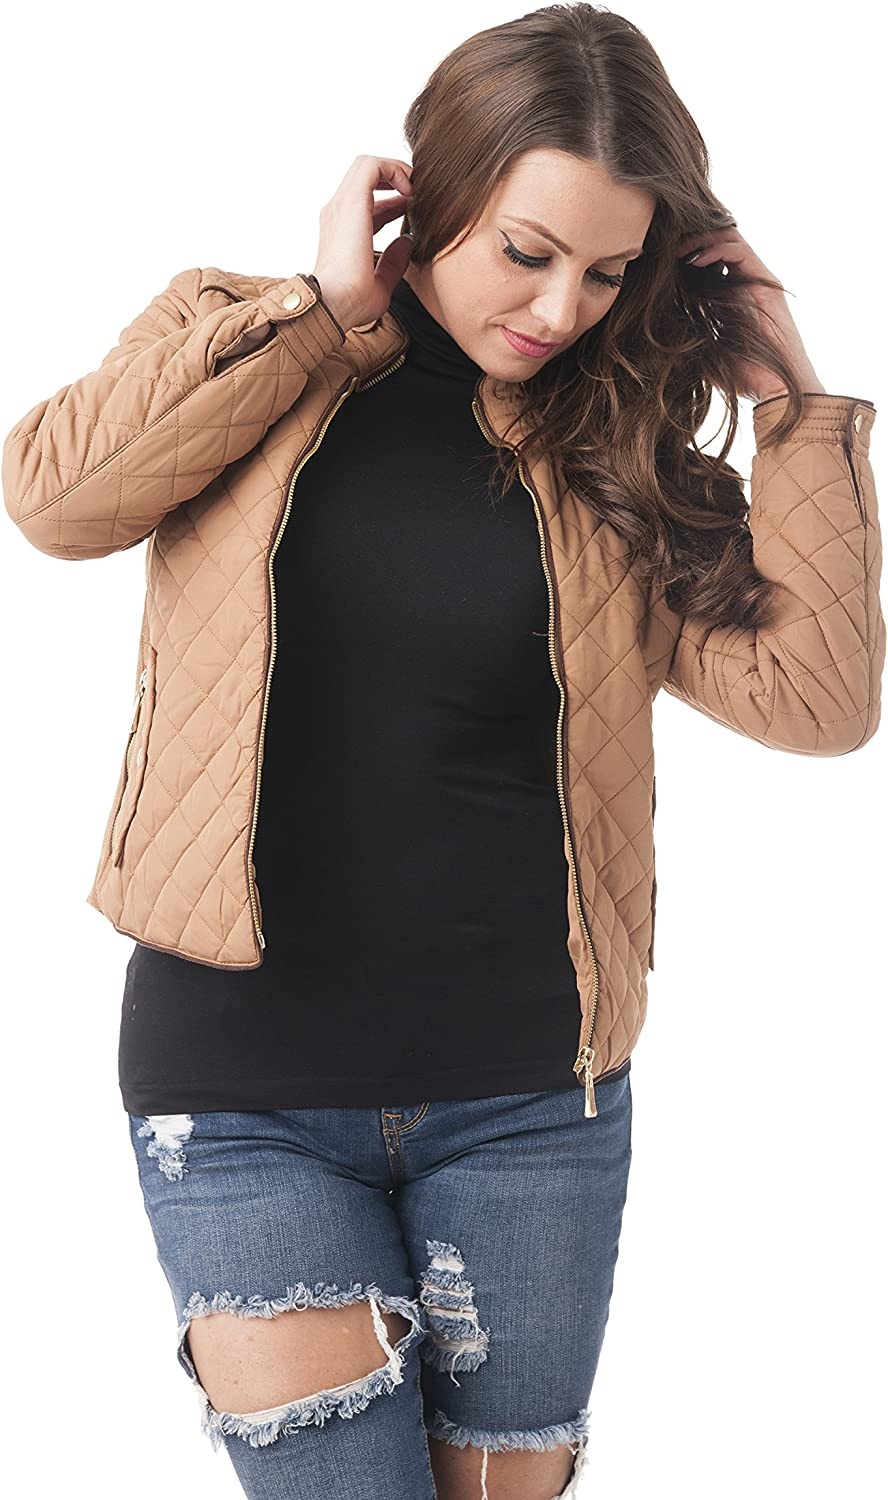 Khanomak Quilted Padding Jacket with Suede Piping Detail